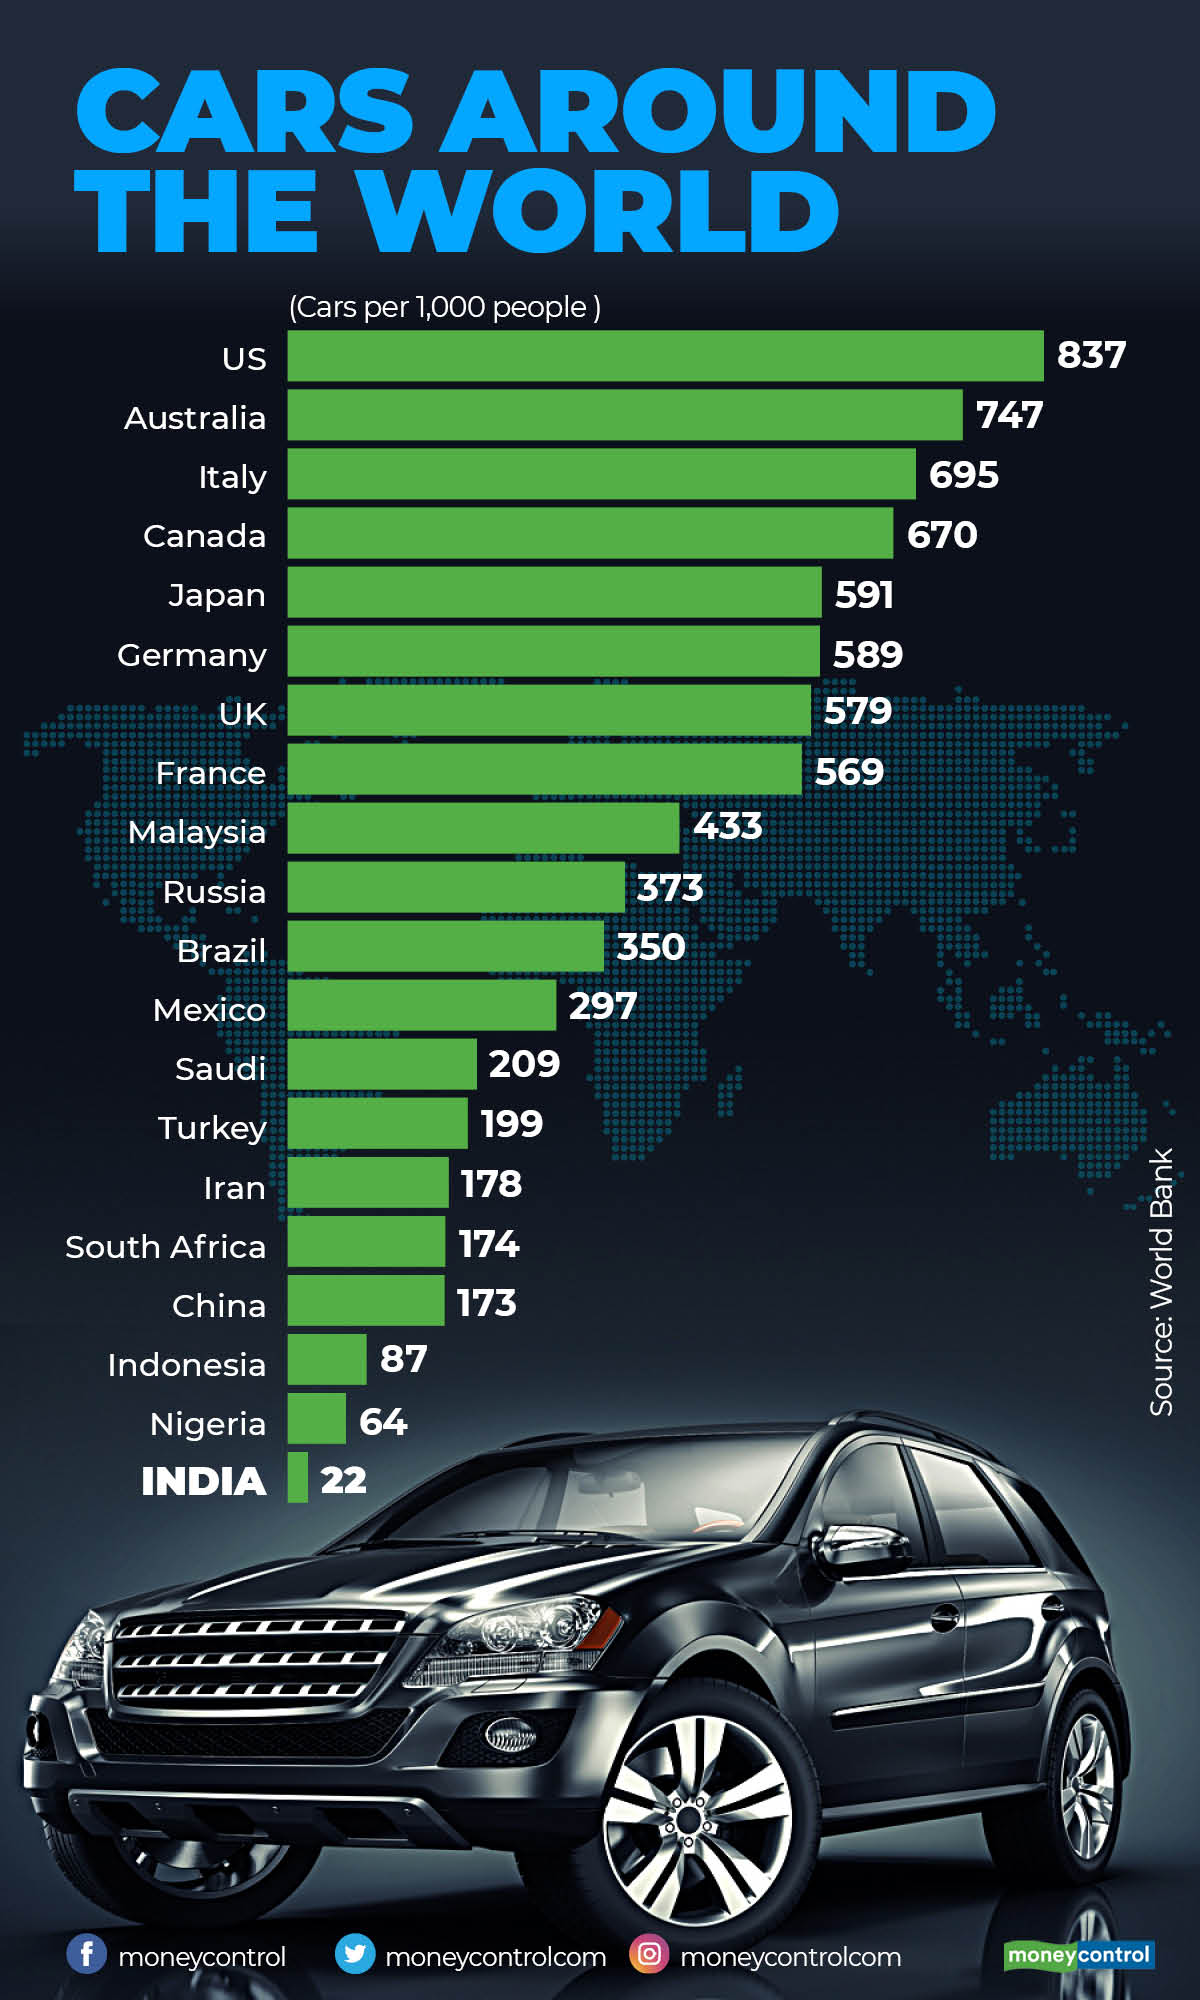 number of cars per 1000 people